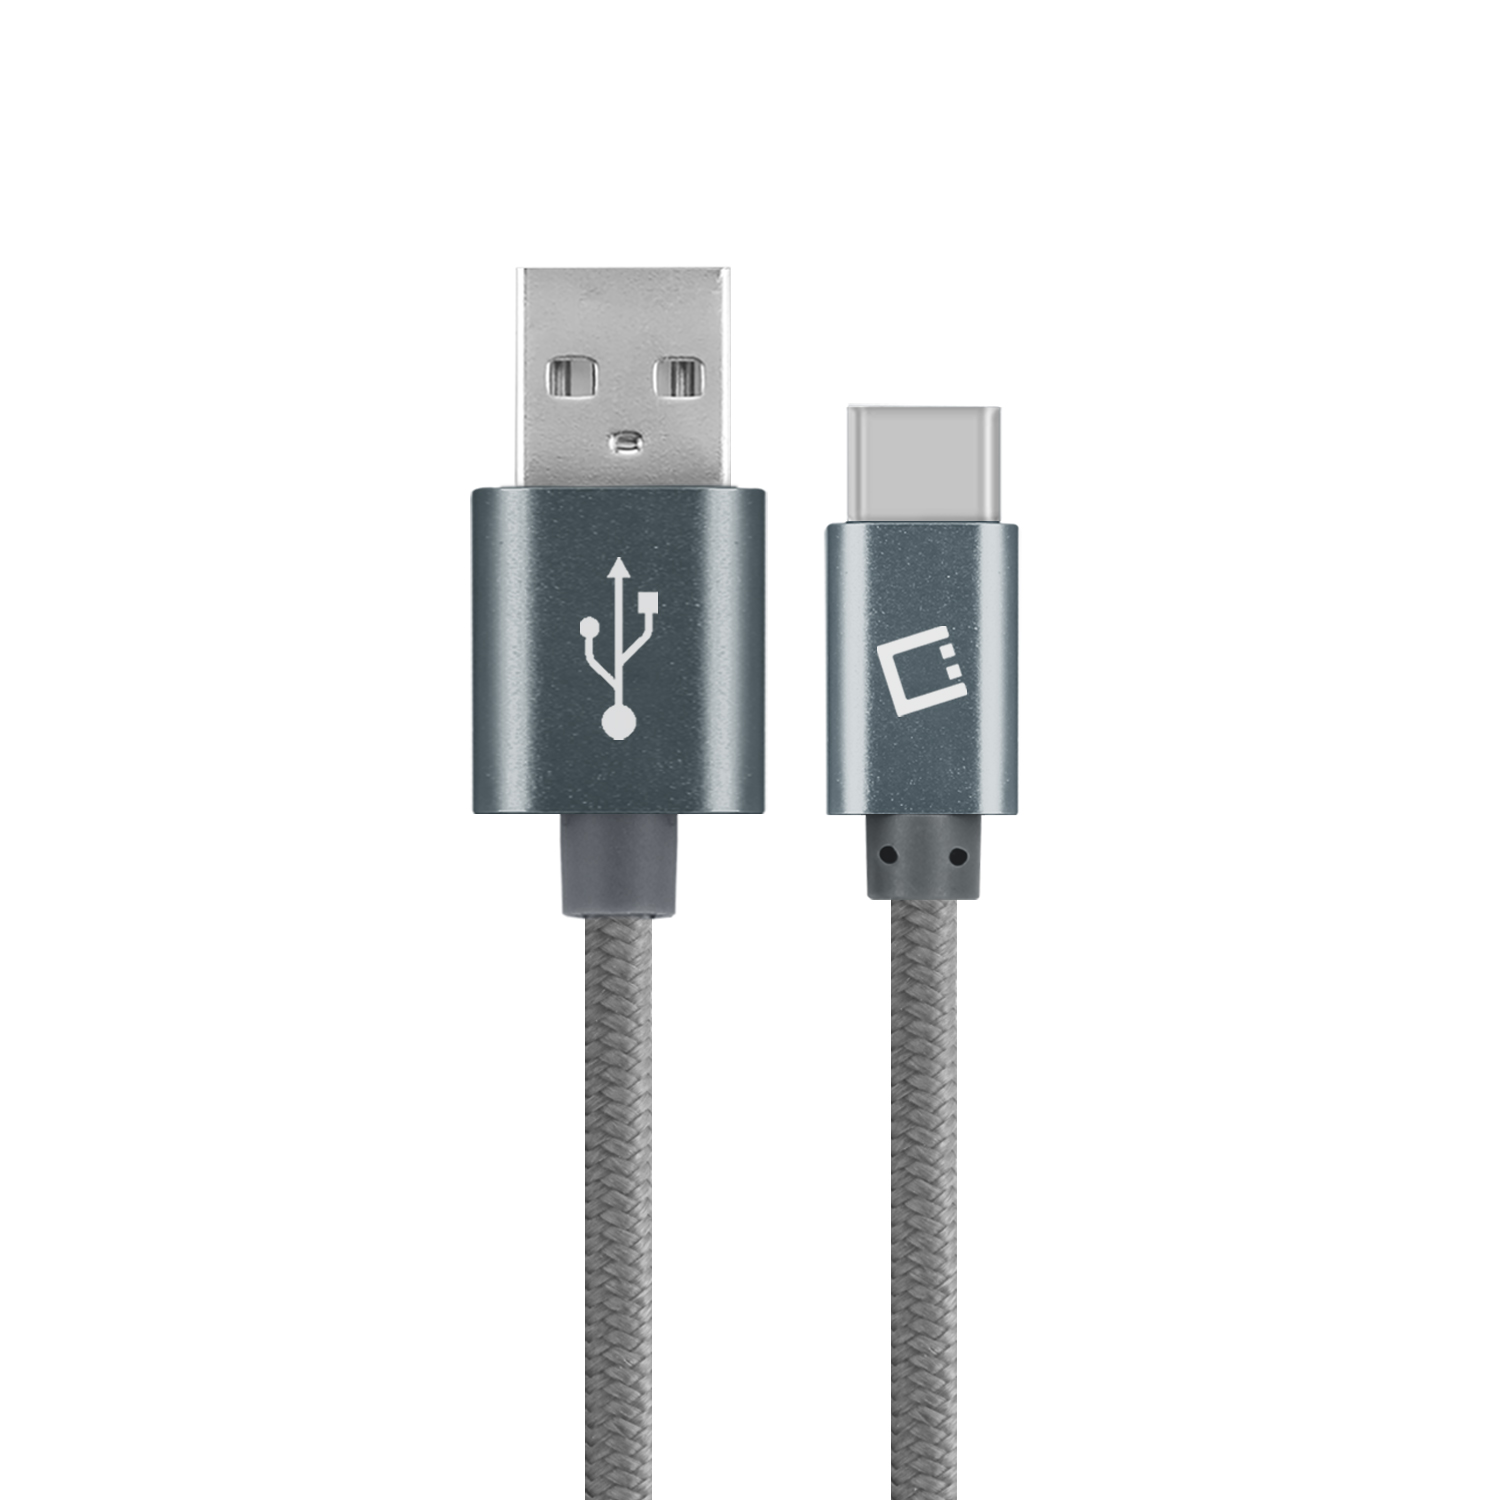 Samsung Galaxy A50 USB Type-C To Type-A Braided Data Power Cable Grey 6ft Braided